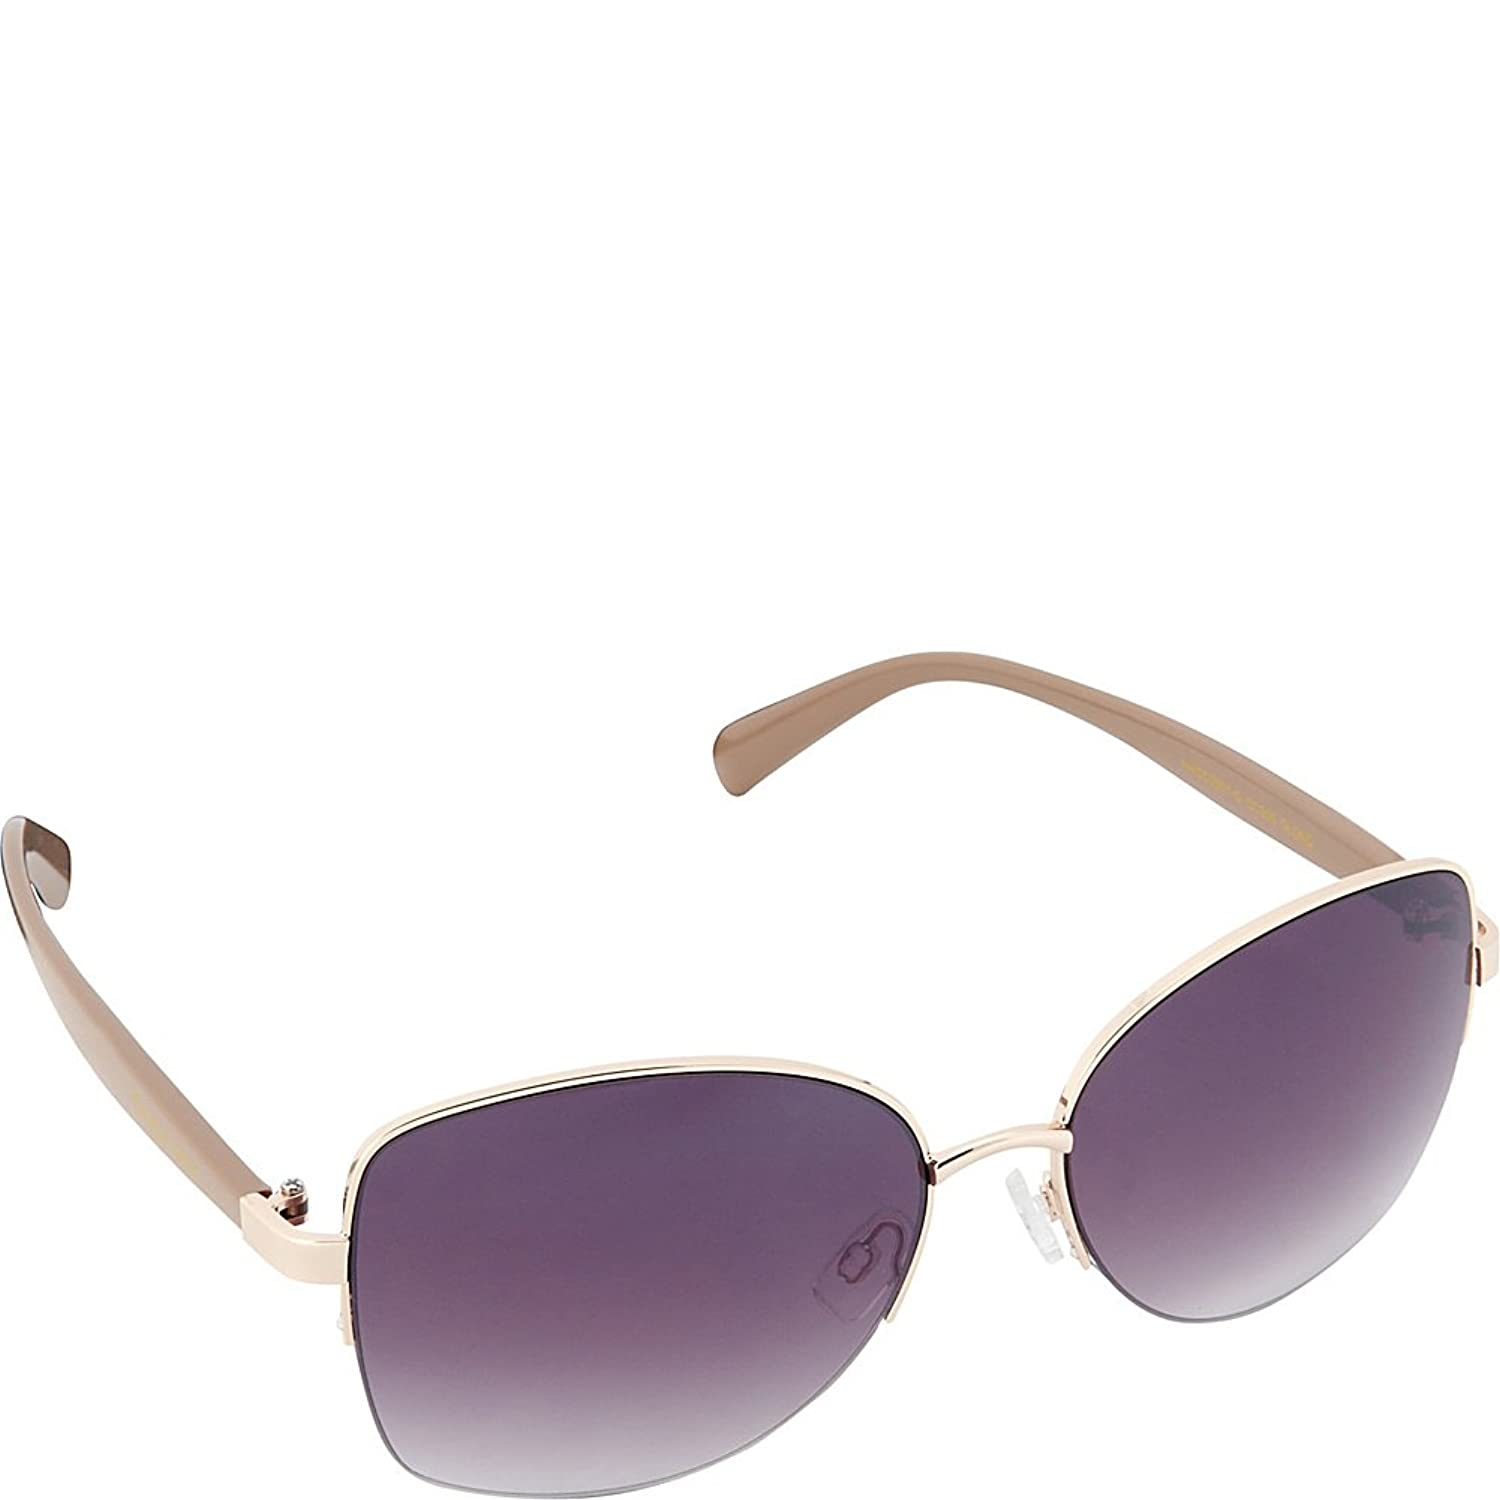 Circus by Sam Edelman Sunglasses Semi Rimless Sunglasses